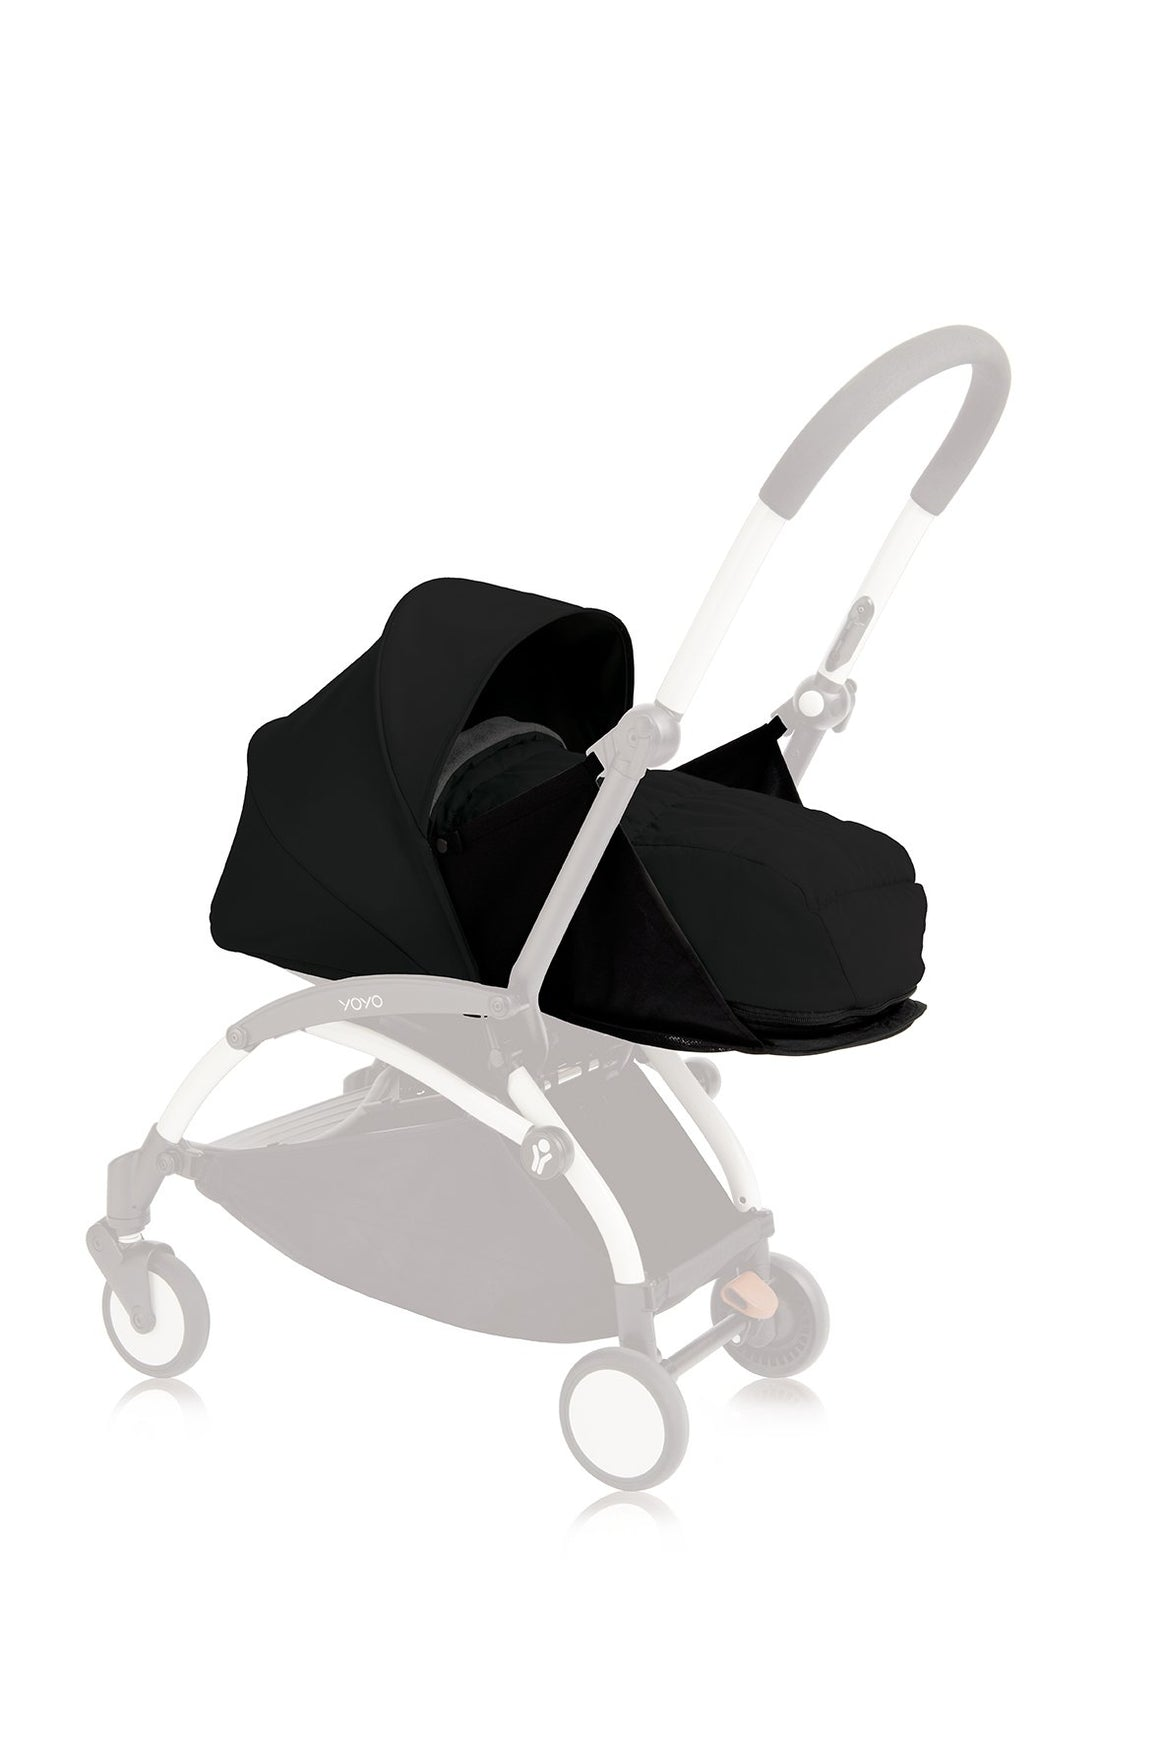 BABYZEN YOYO Newborn Bassinet Only - Black